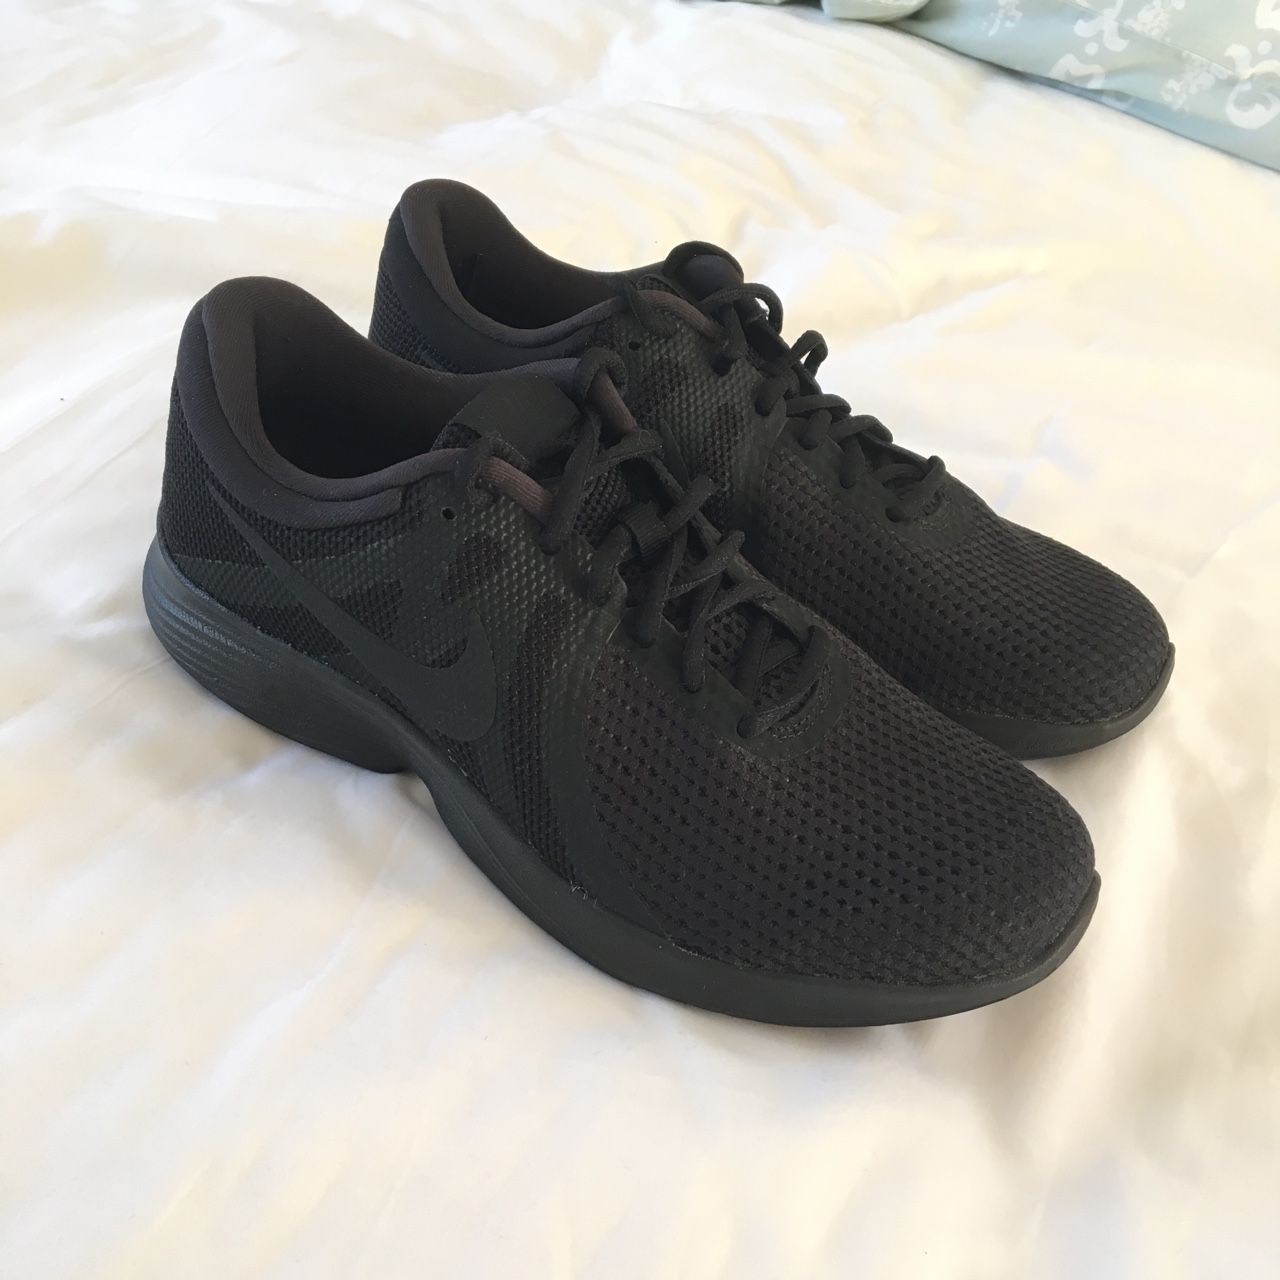 Nike Free Run 4.0 V3 trainers in all black. Perfect Depop